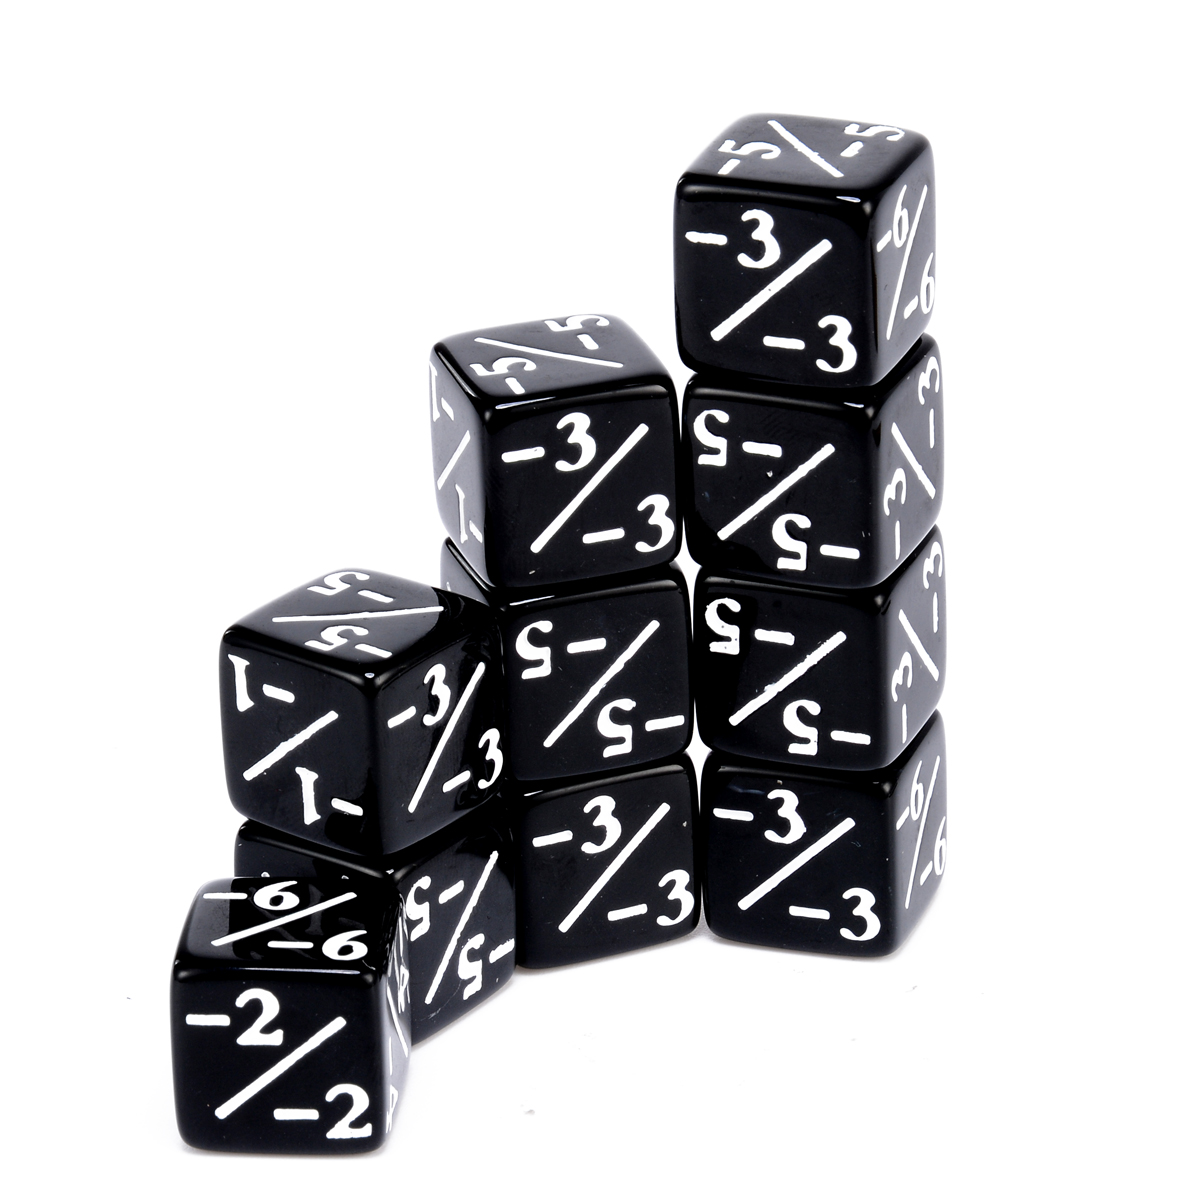 10cs Dice Counters Black Negative -1/-1 Dices For Magic The Gathering MTG Games Outdoor Family Party Interesting Games Tool